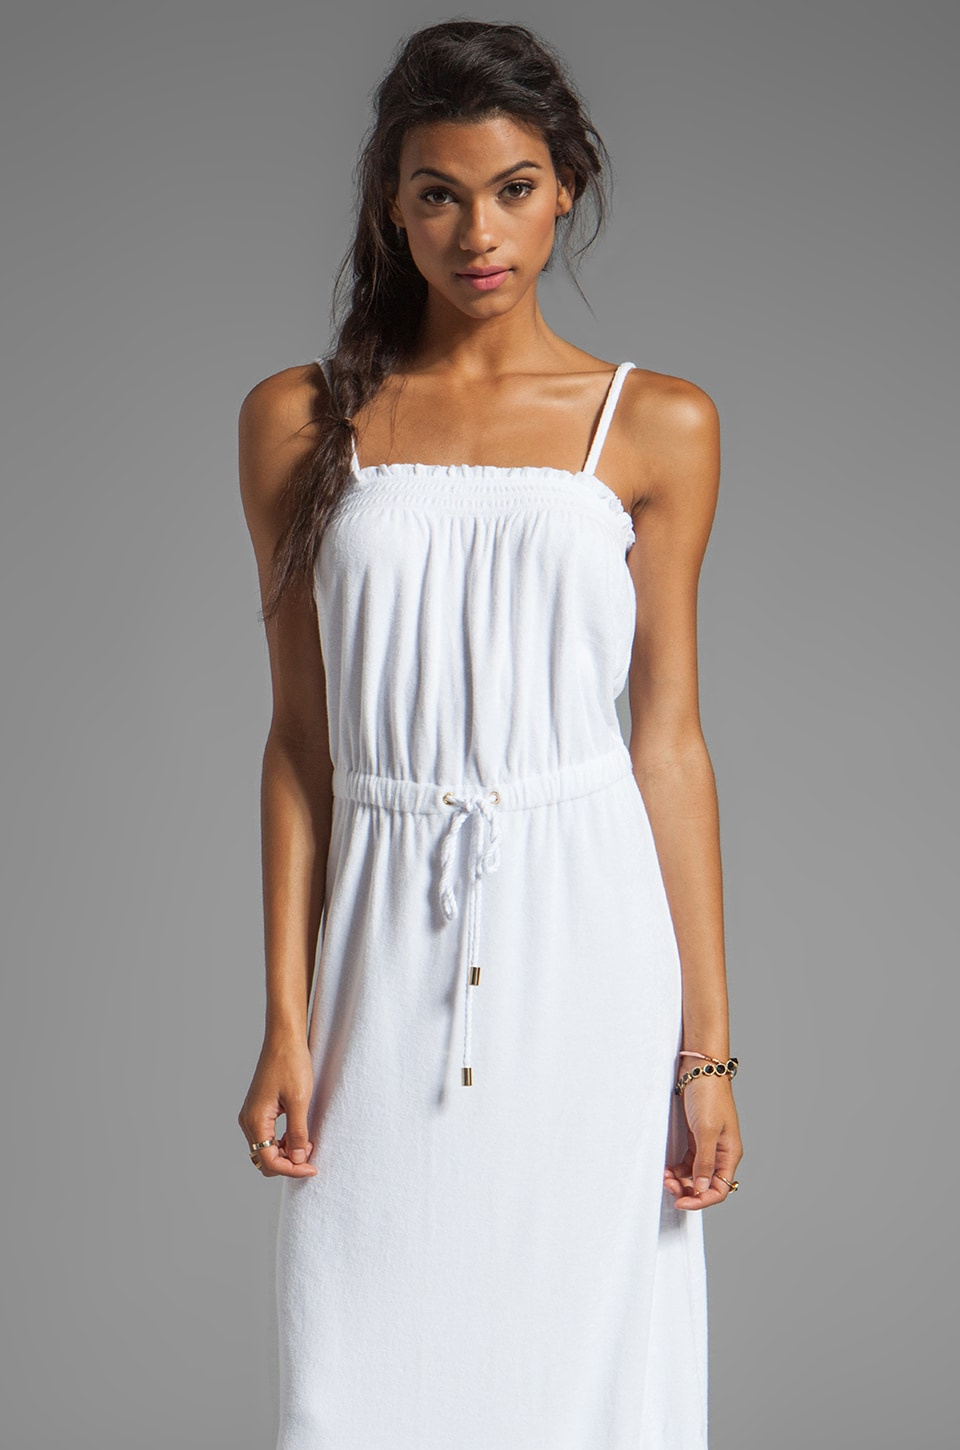 Juicy Couture Terry Maxi Dress in White